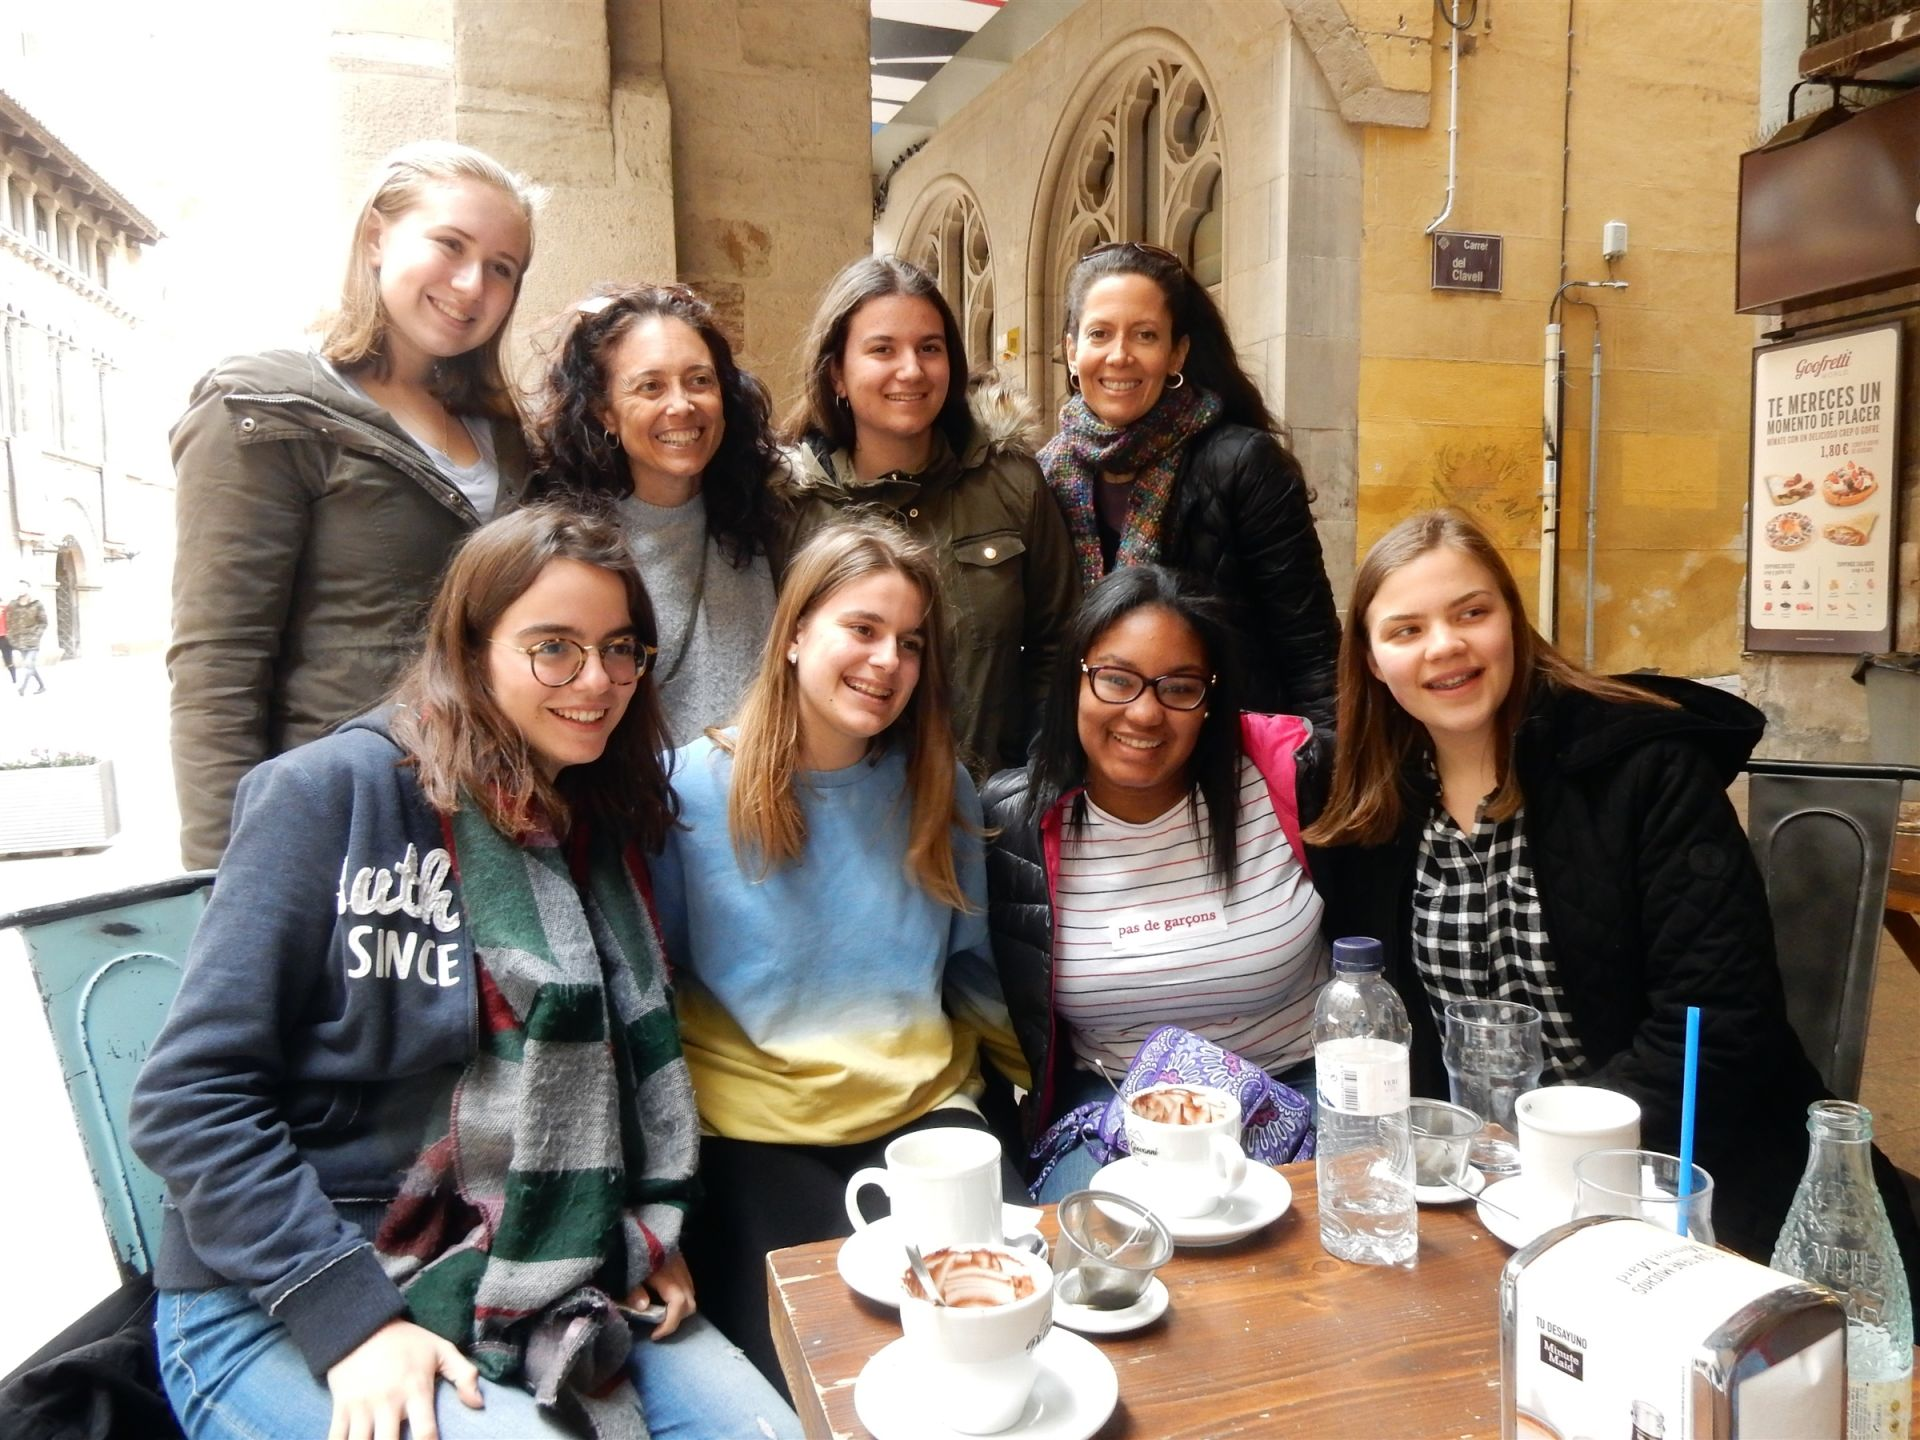 Like their counterparts in France, students and faculty in Barcelona were able to enjoy fine European dining.